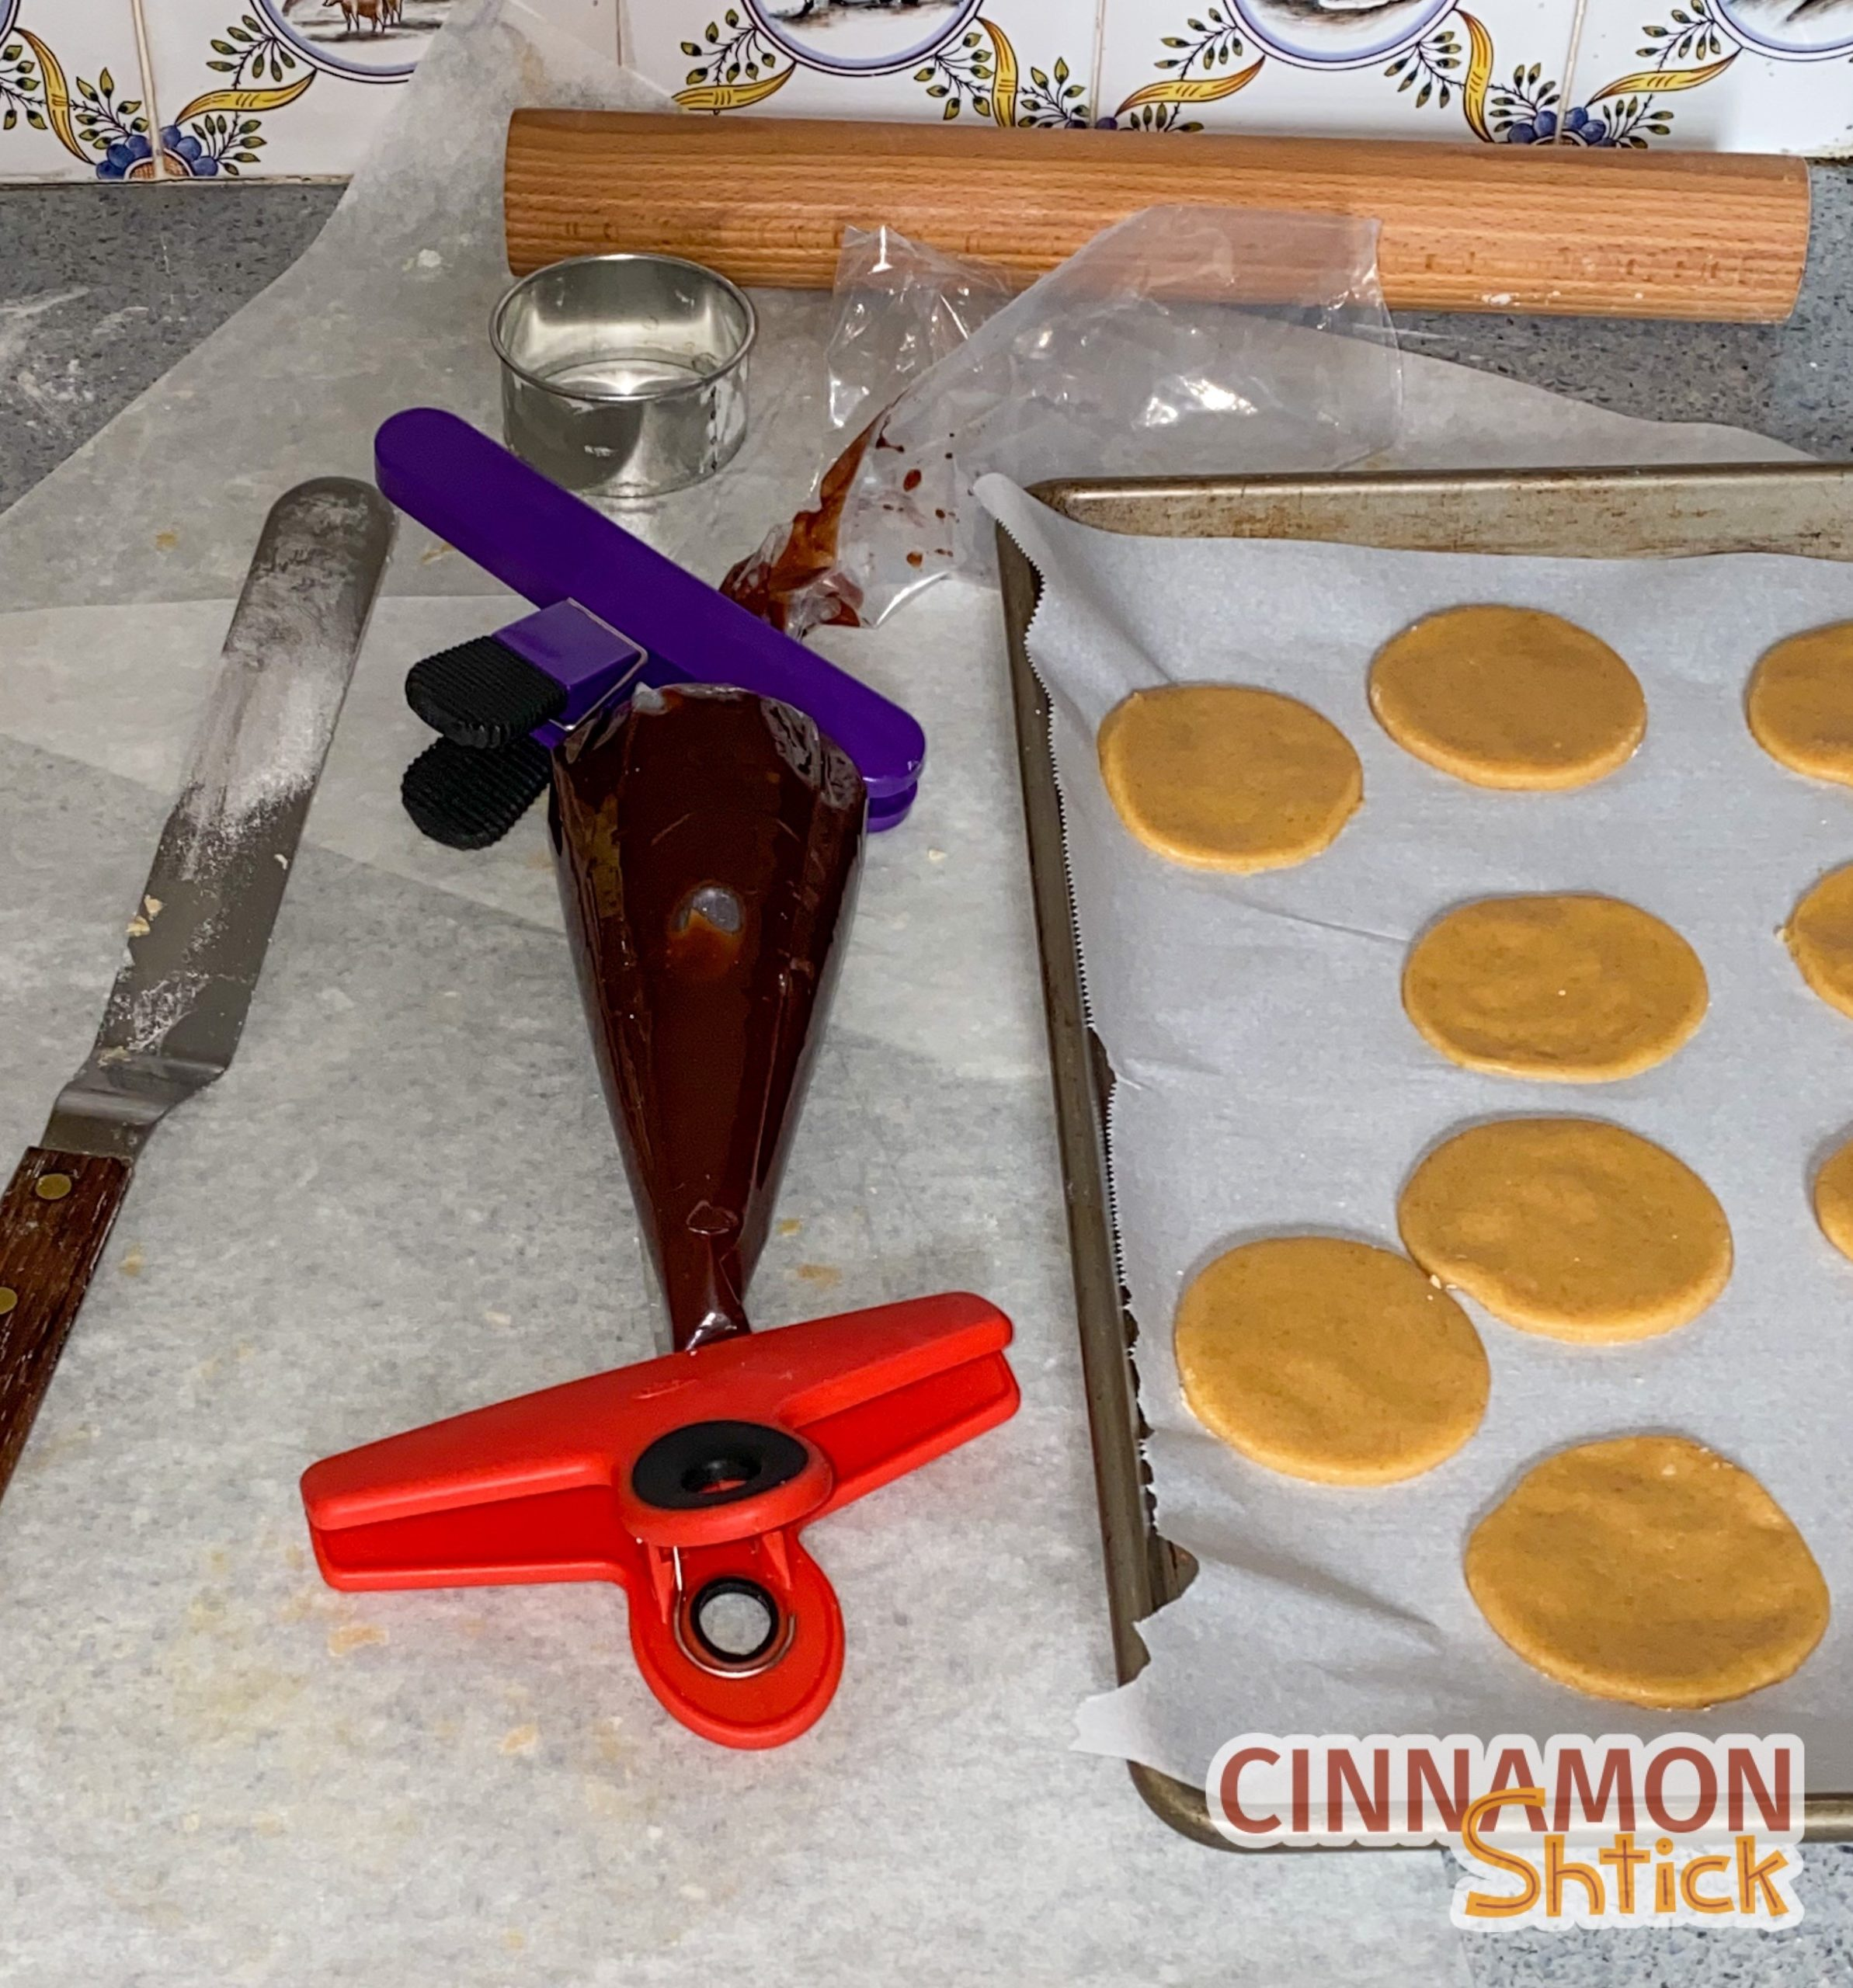 Hamantaschen dough cut in circles with brownie batter in piping bag